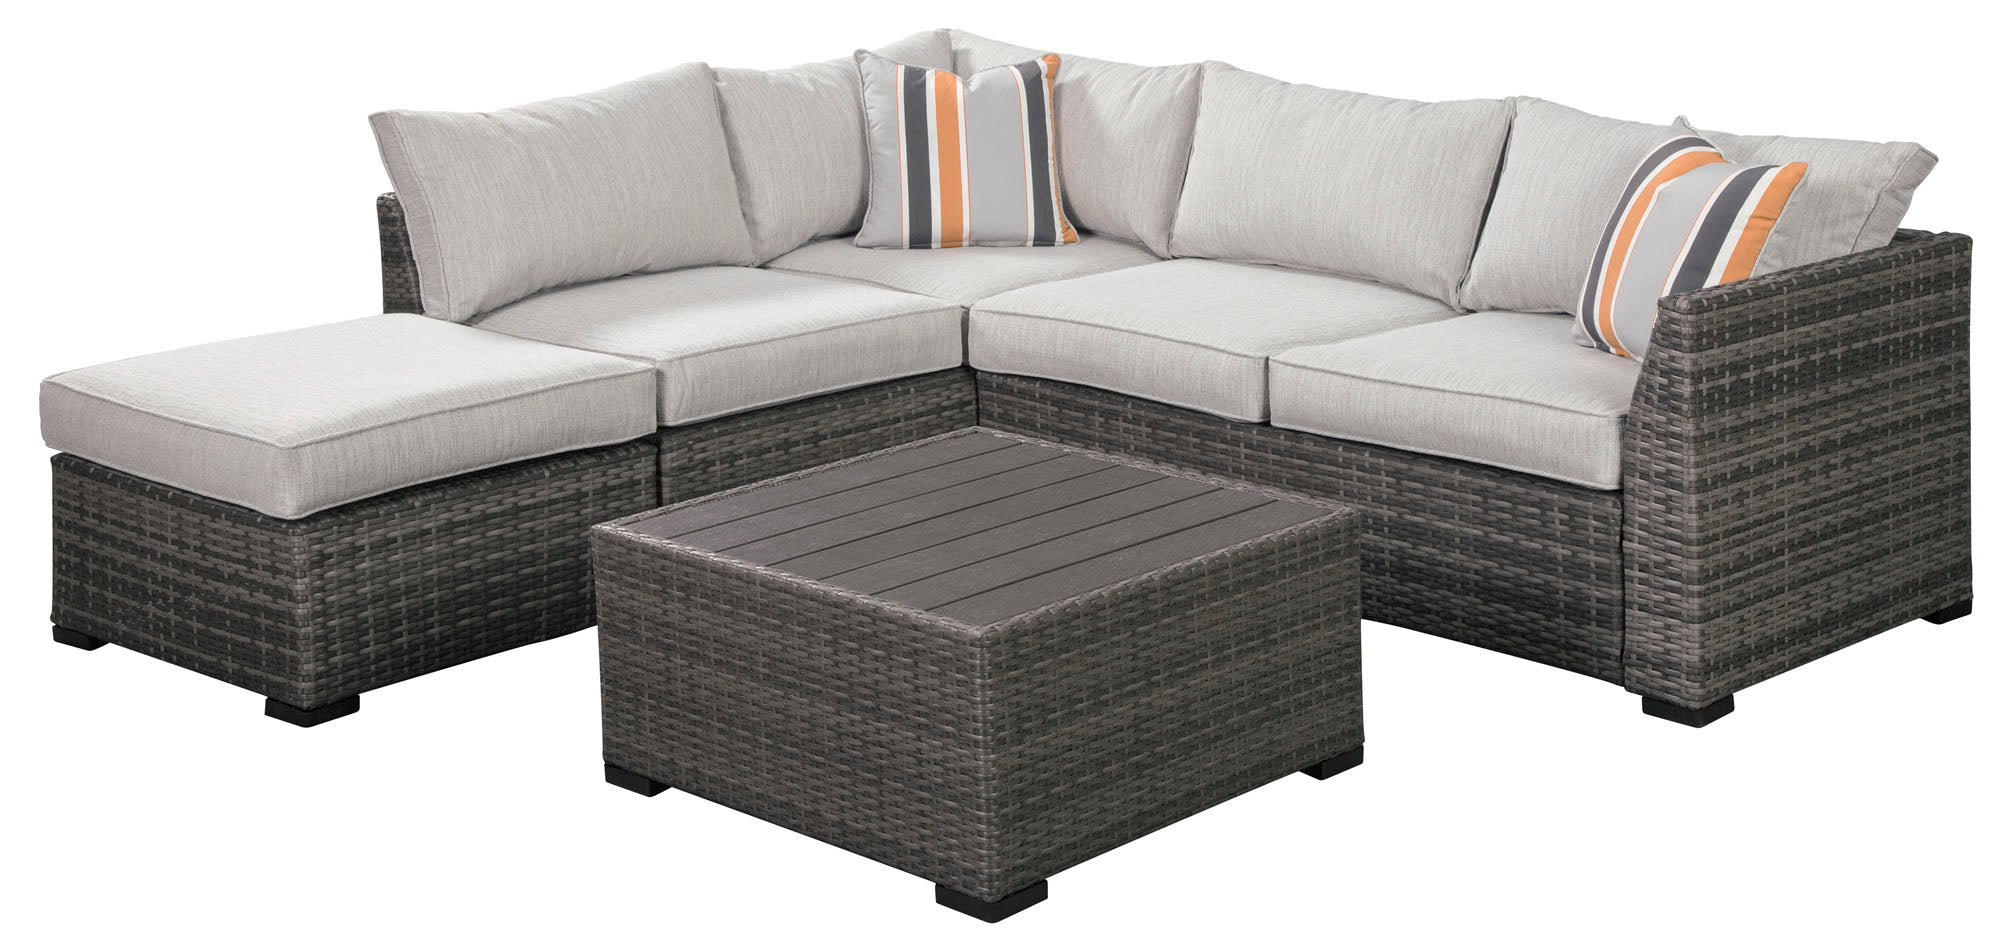 Cherry Point Outdoor 4 Piece Sectional Set w/Cushion - MJM Furniture